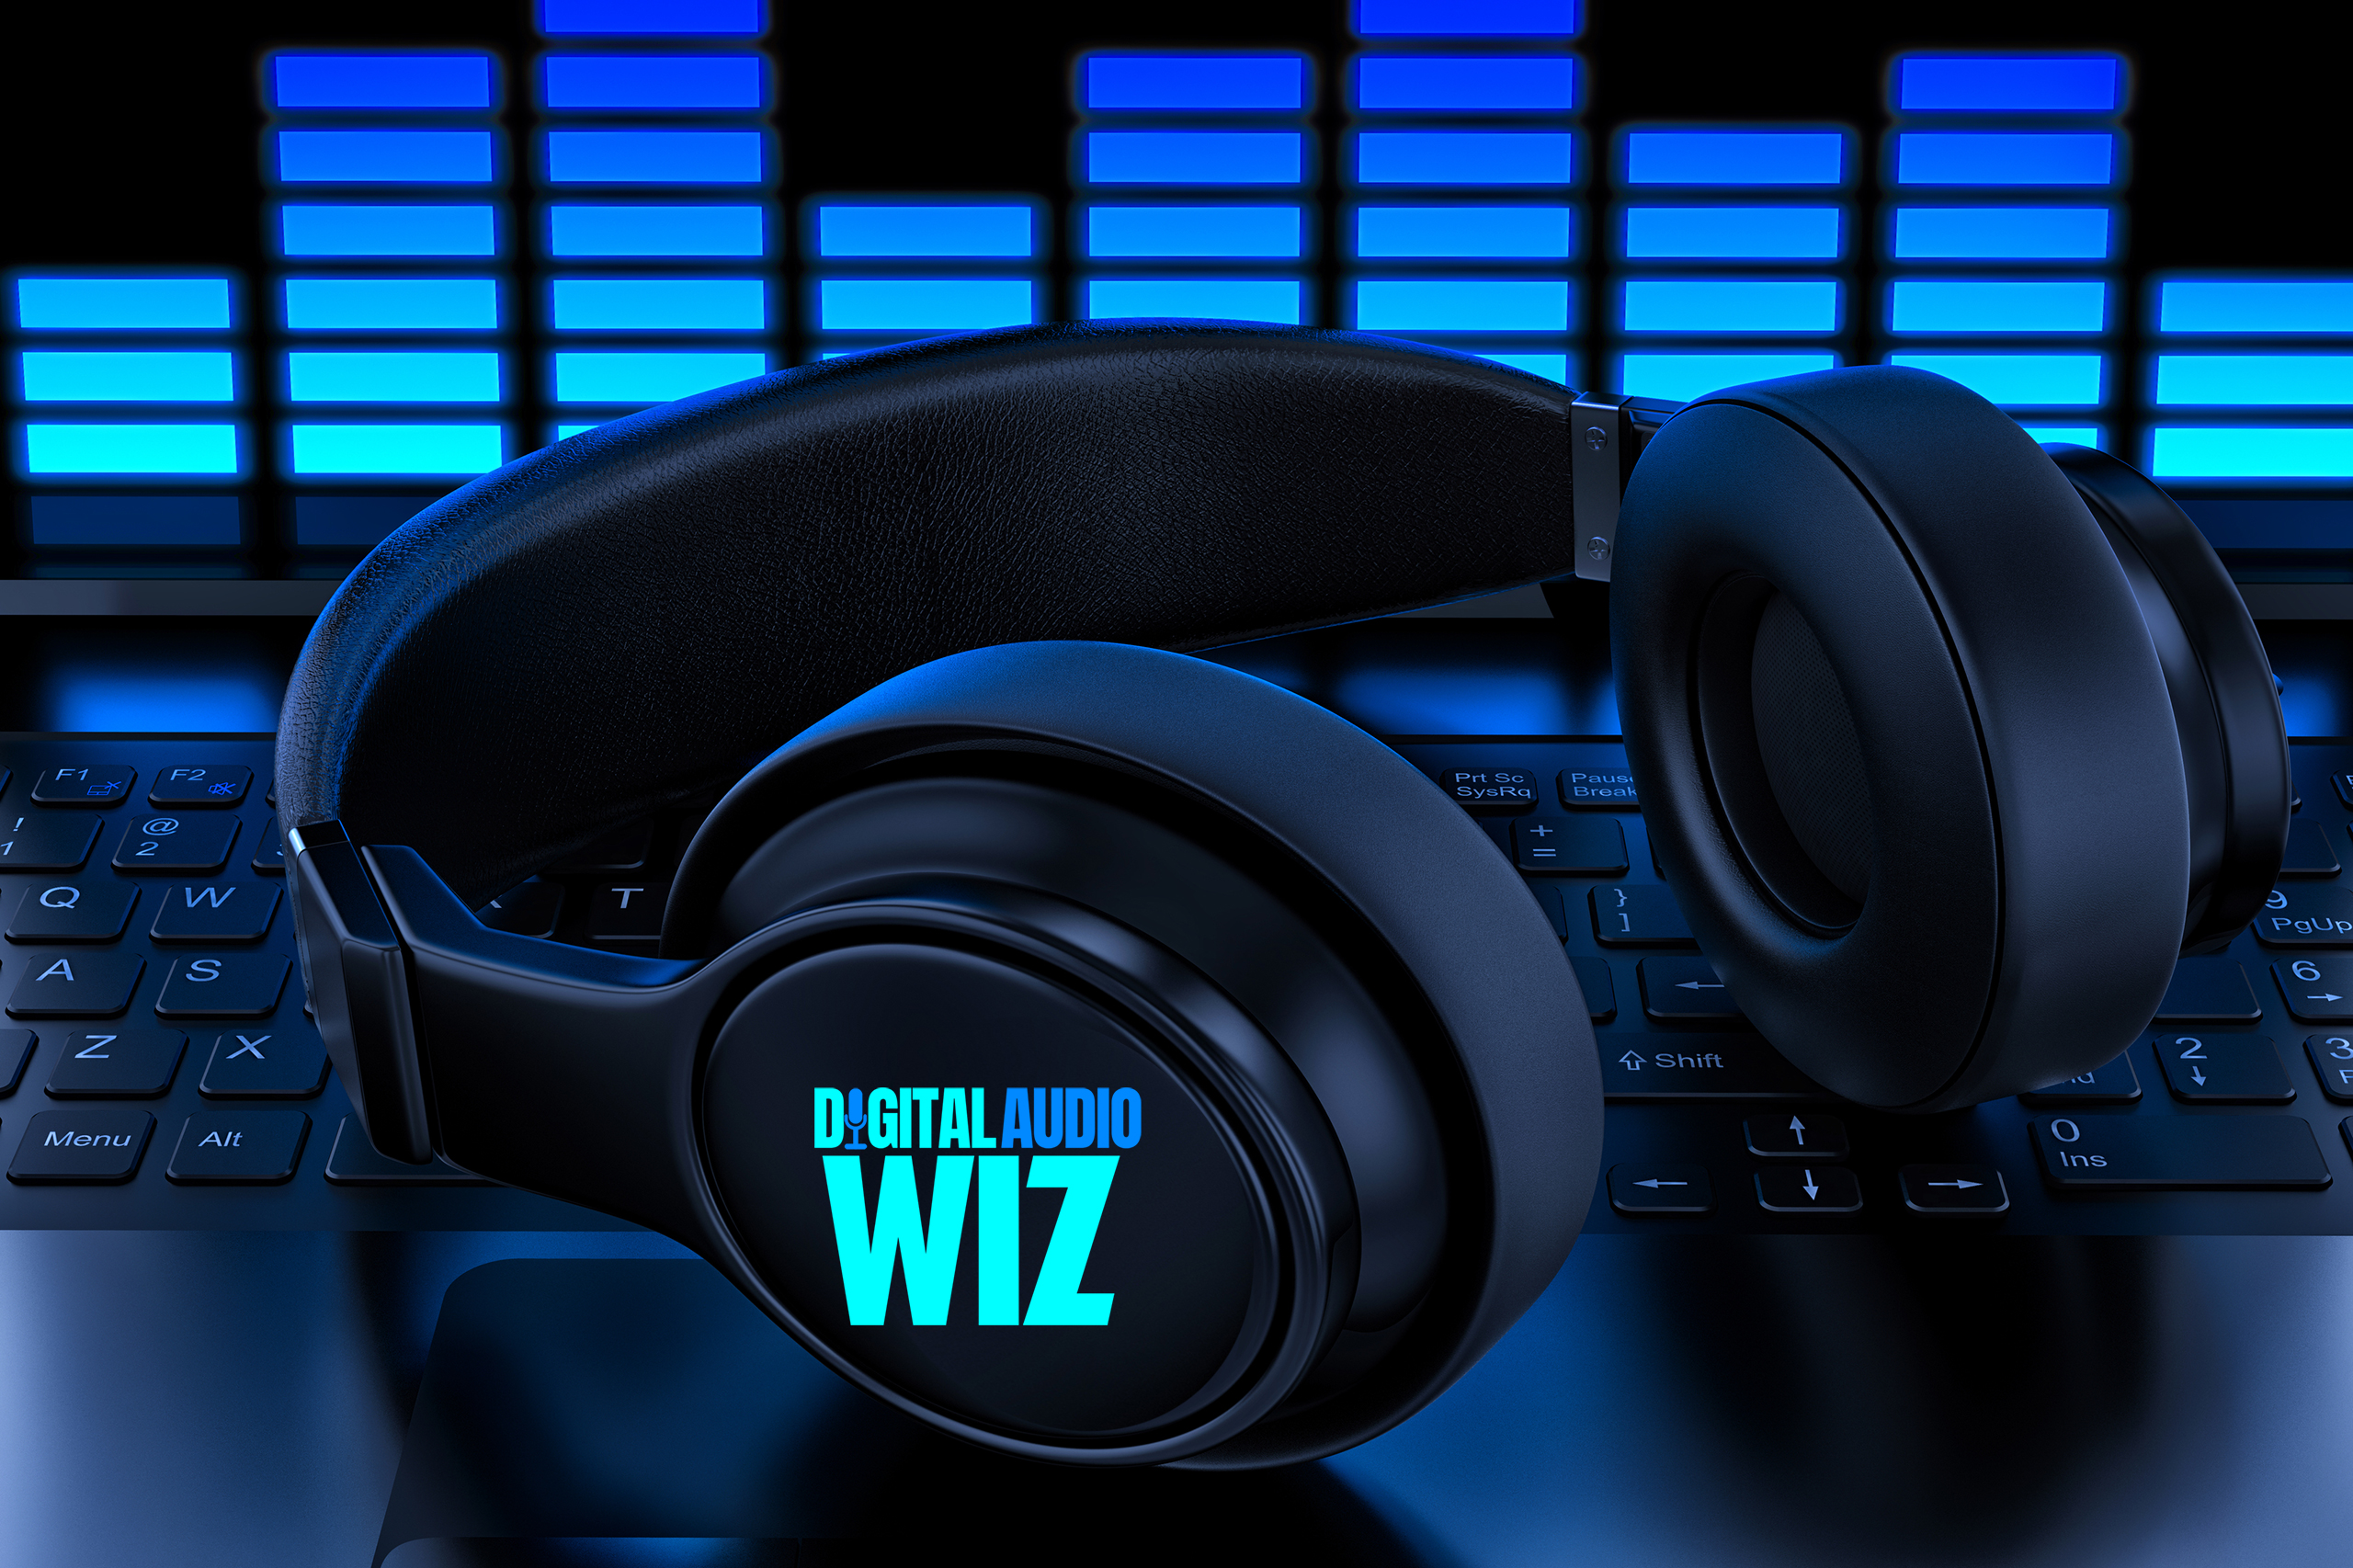 Digital Audio Wiz Newsletter Update